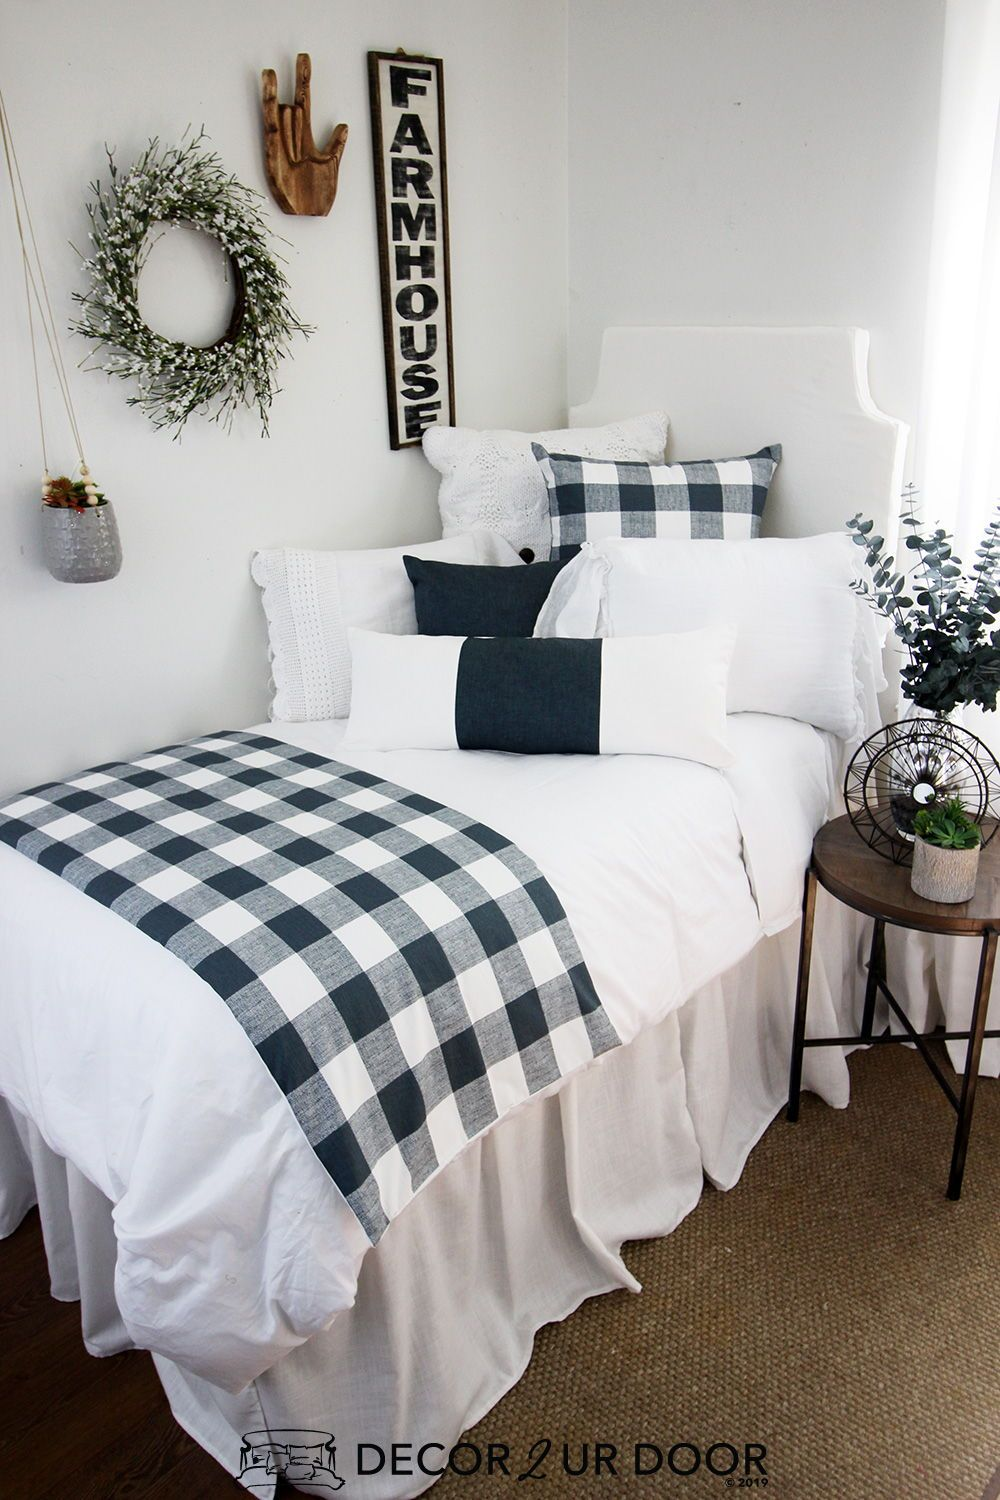 Design Your Own Dorm Room: Custom Dorm Bedding And Dorm Room Decor. Shop This Year's